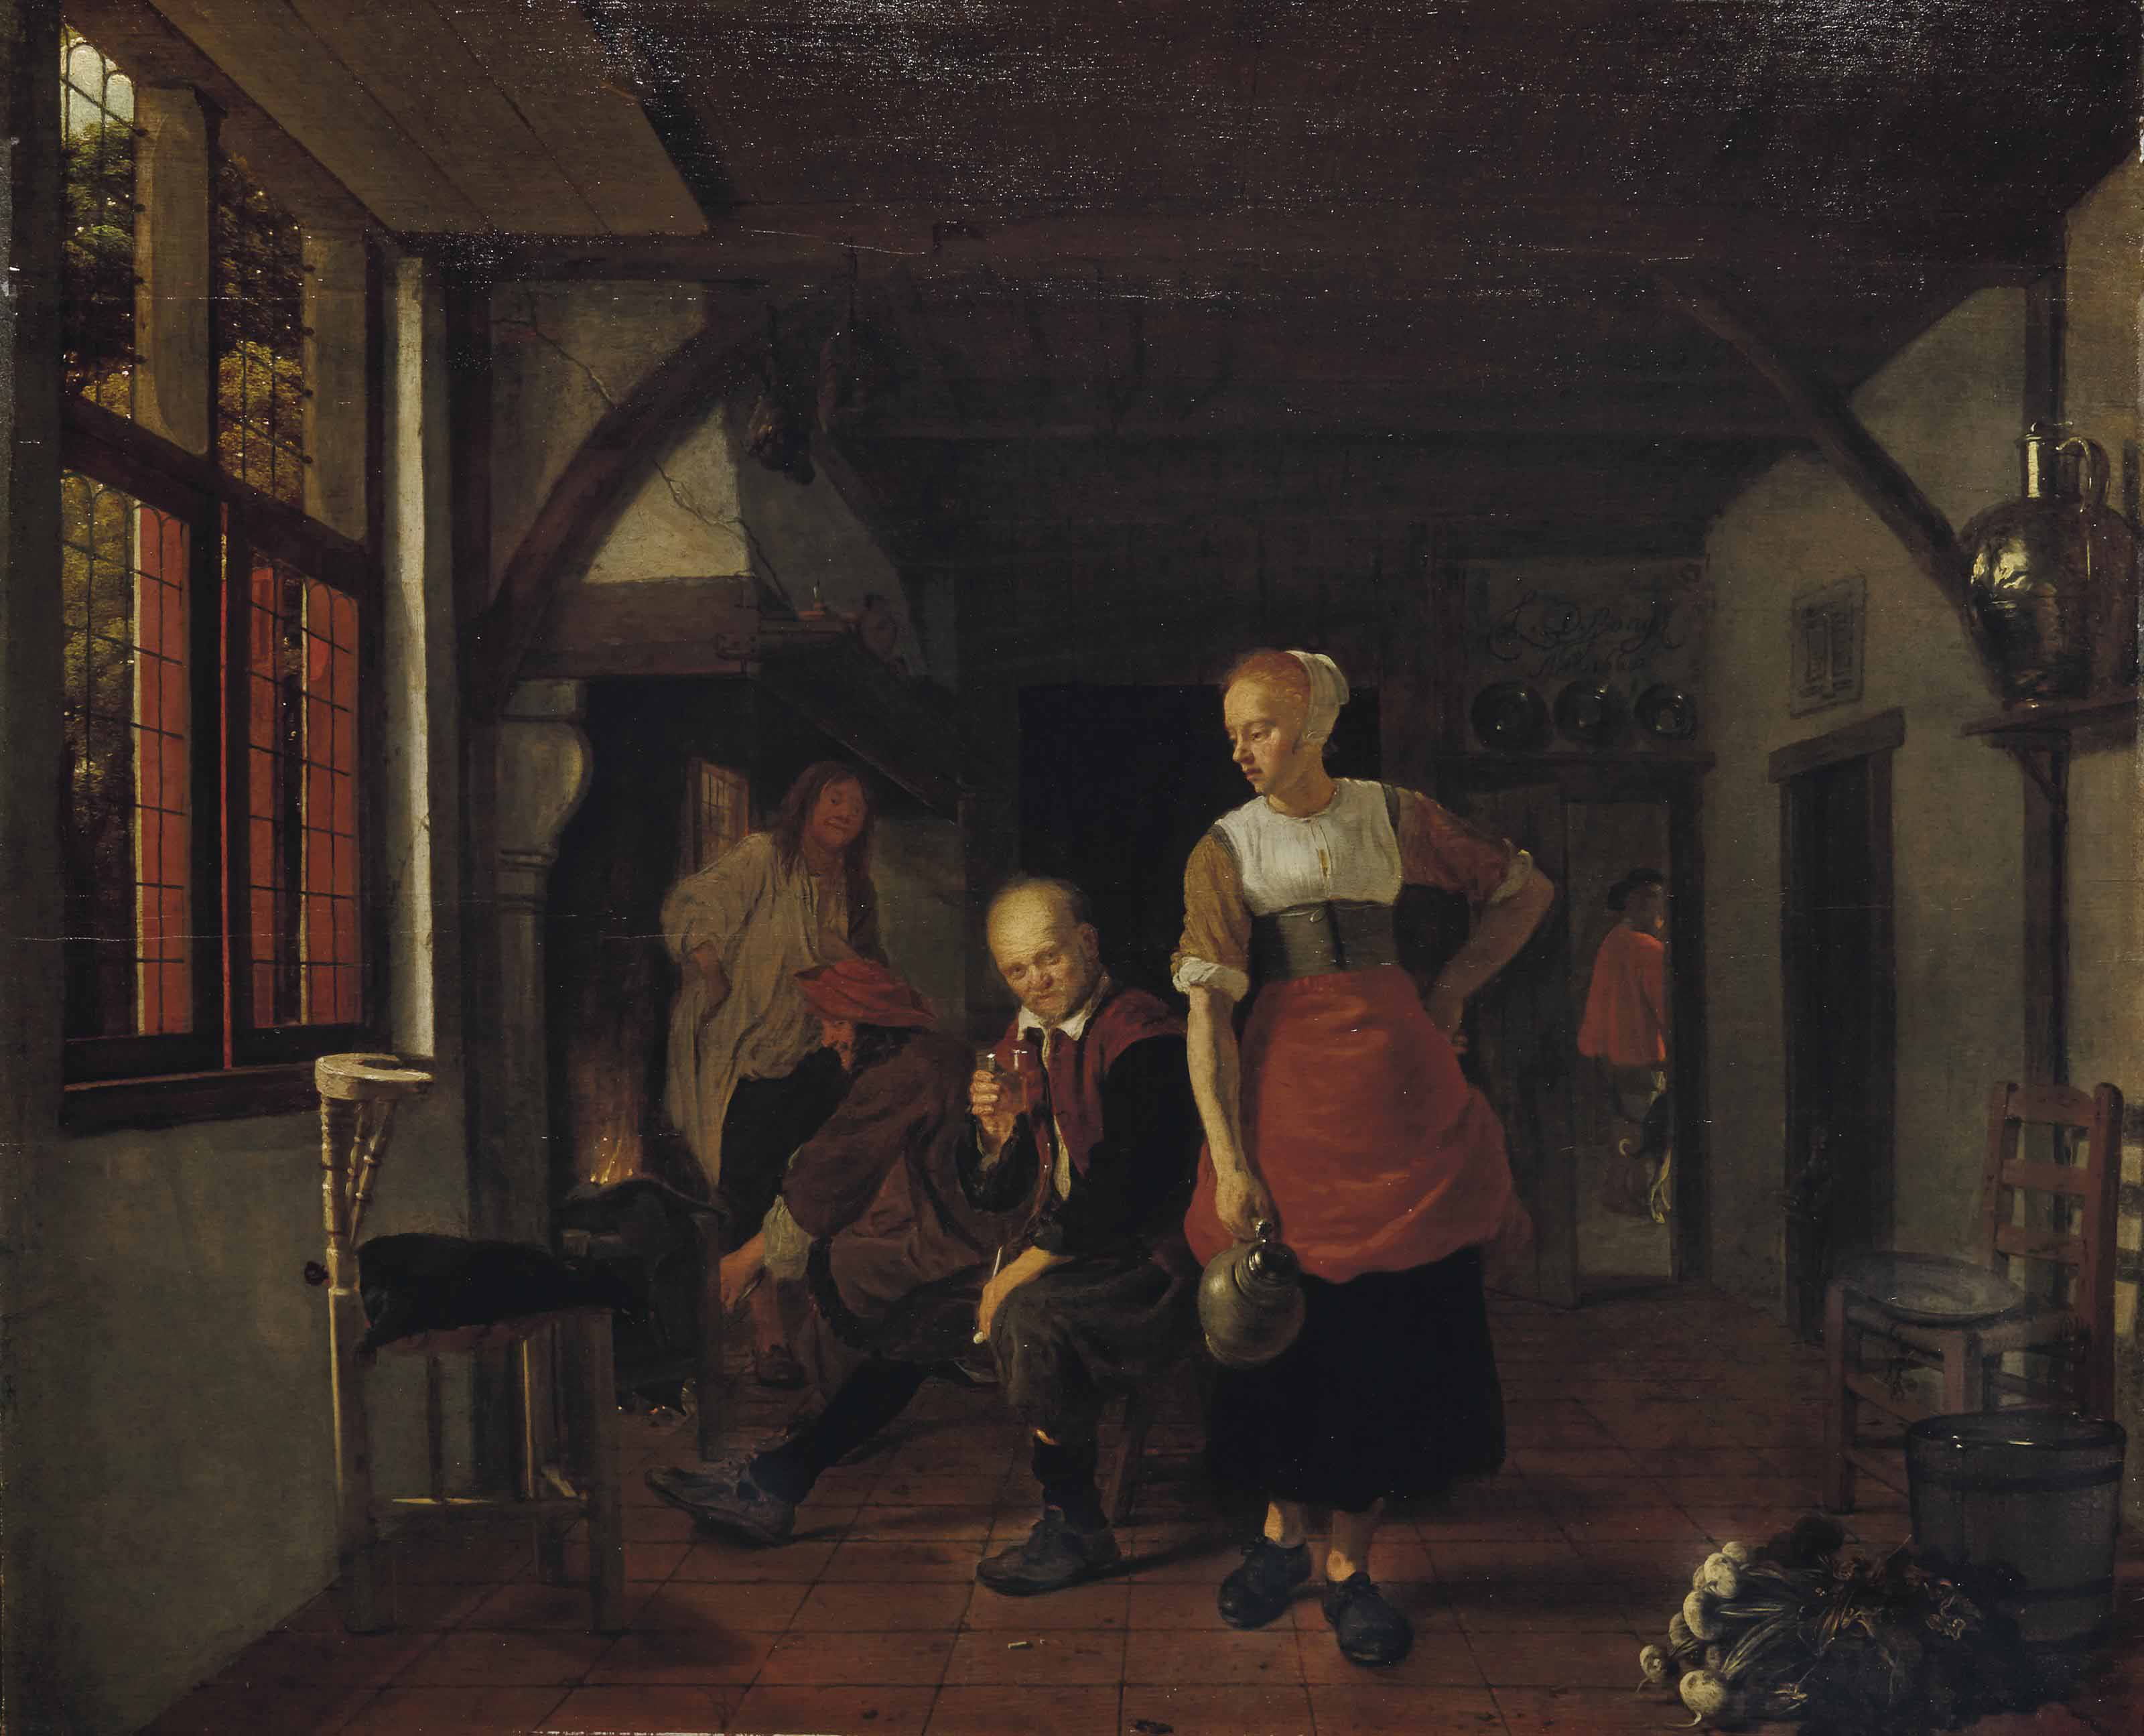 An interior with a maid holding a jug and three men beside a fire